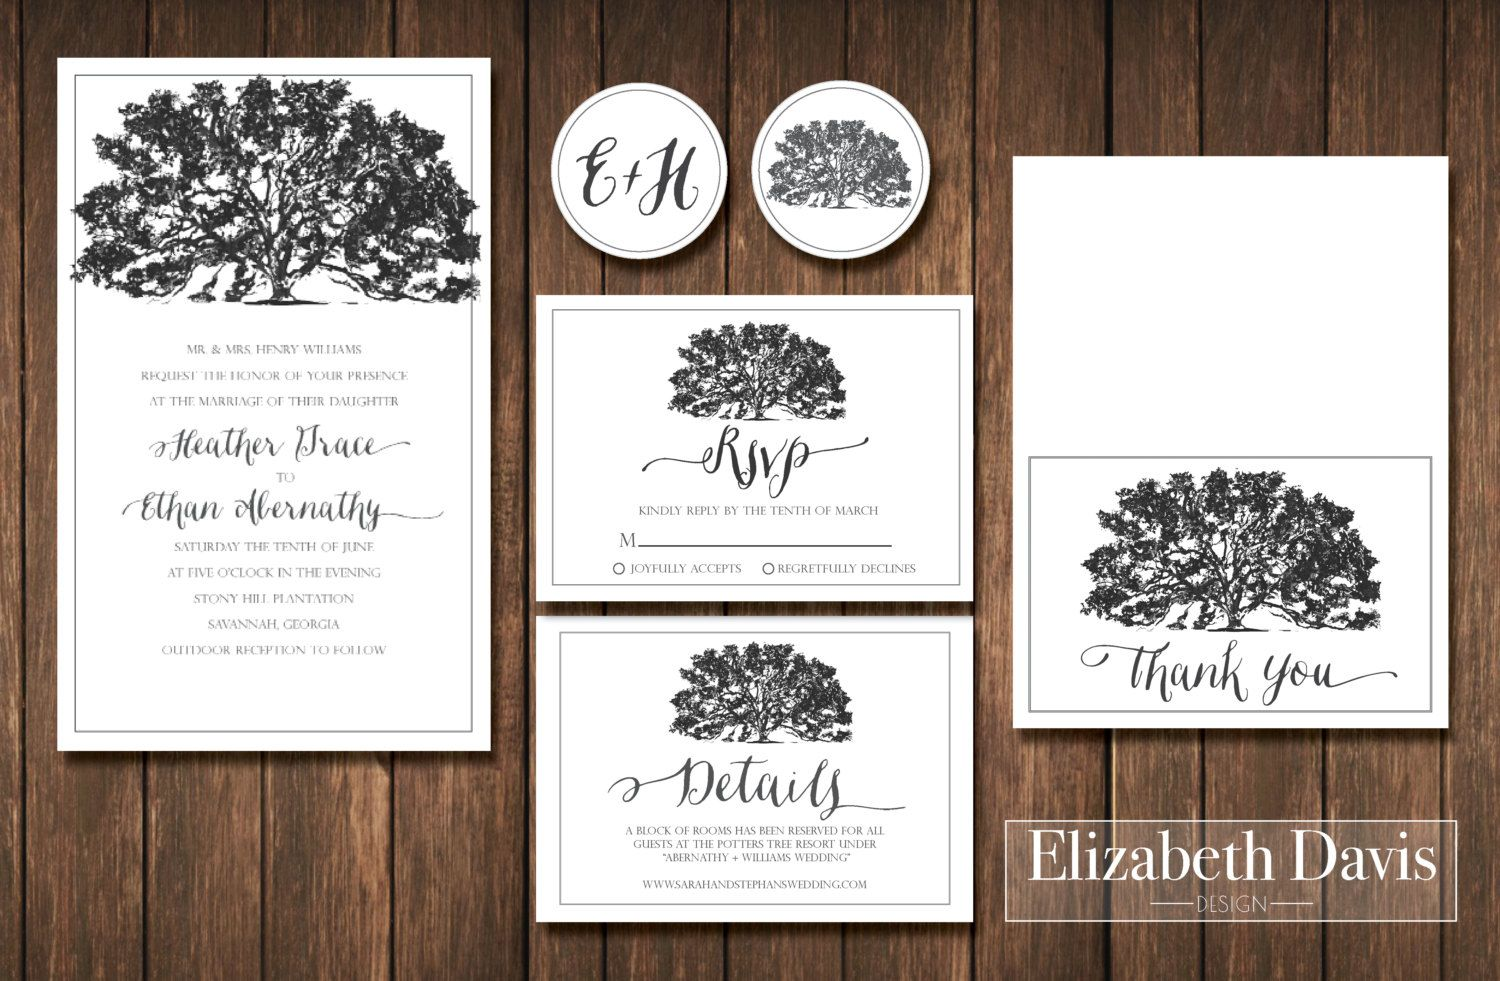 different sizes from dinner plate to poster board Printable wedding menus /& menu boards elegant shabby boho chic rustic DIY in 10